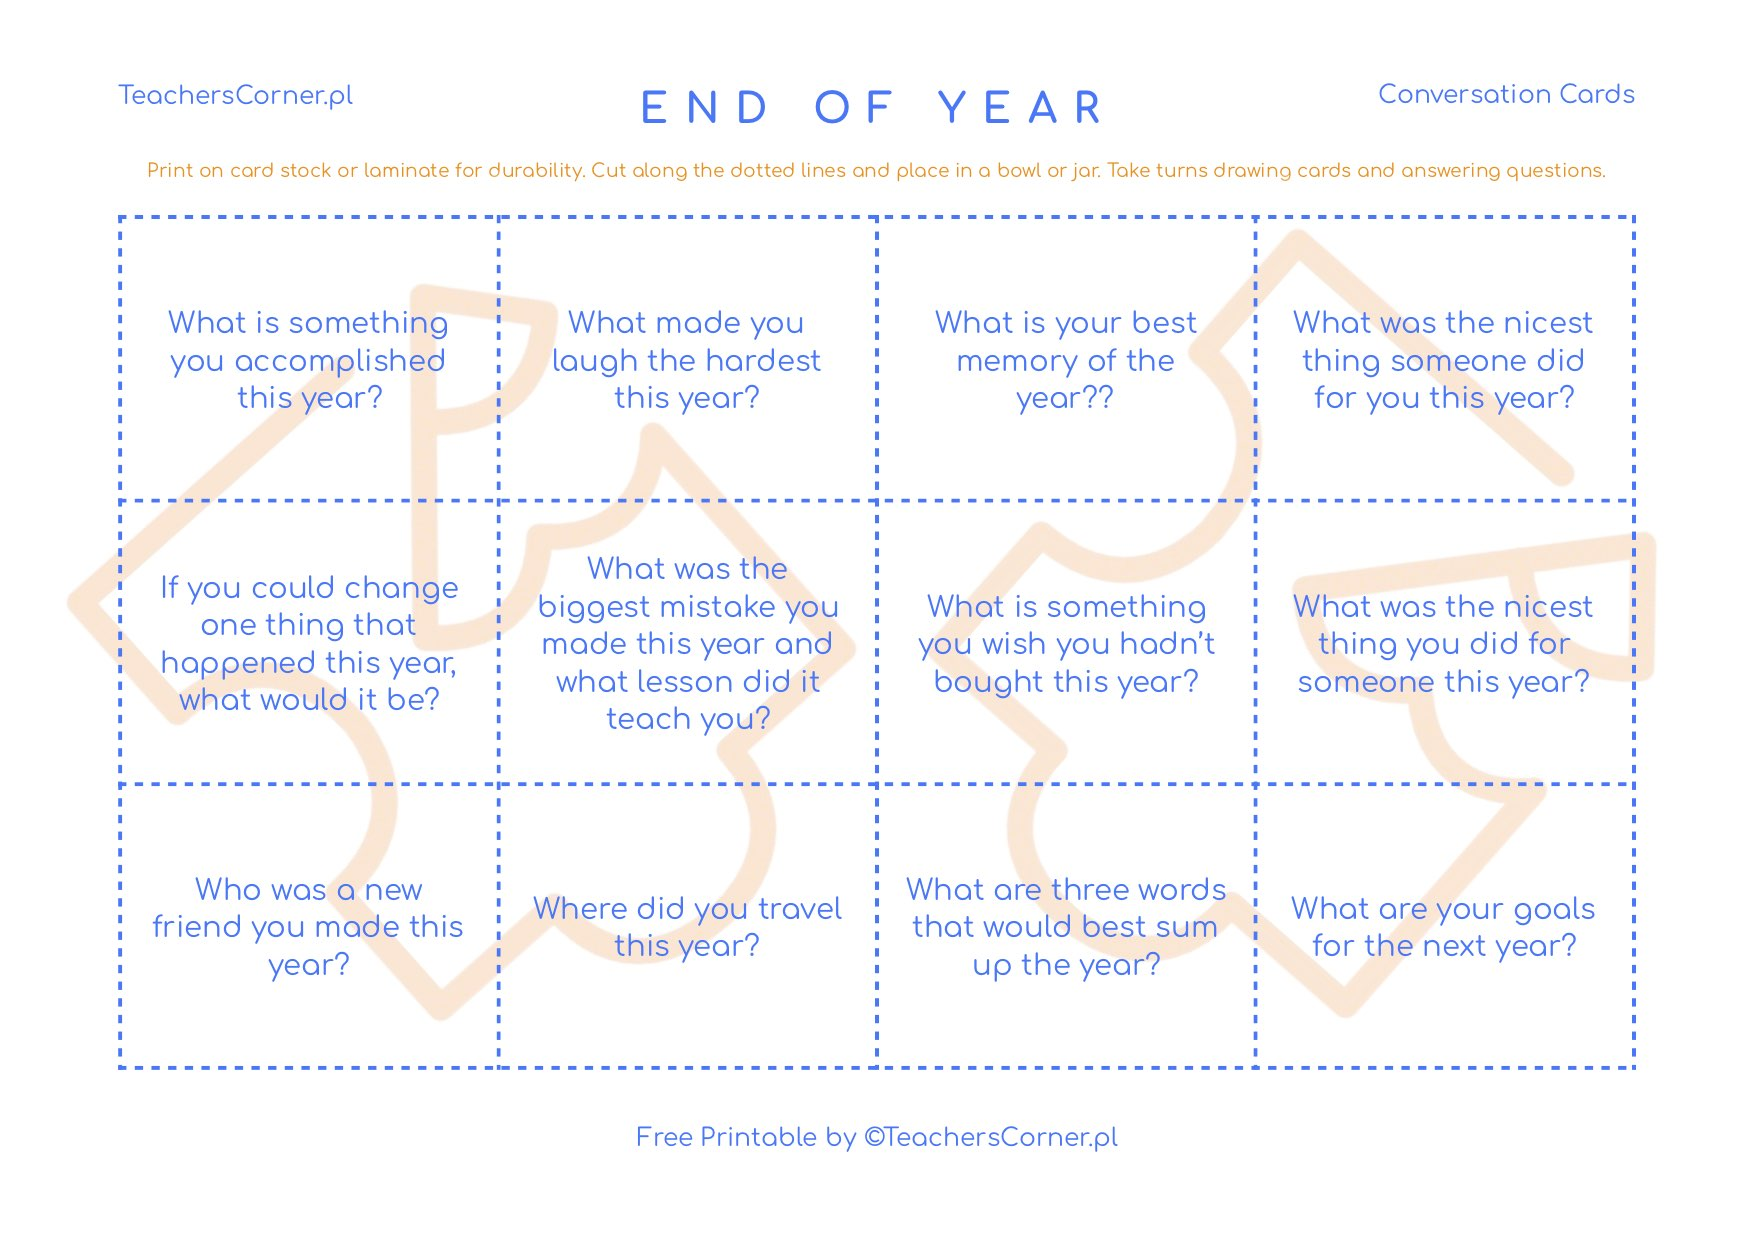 end of year conversation cards